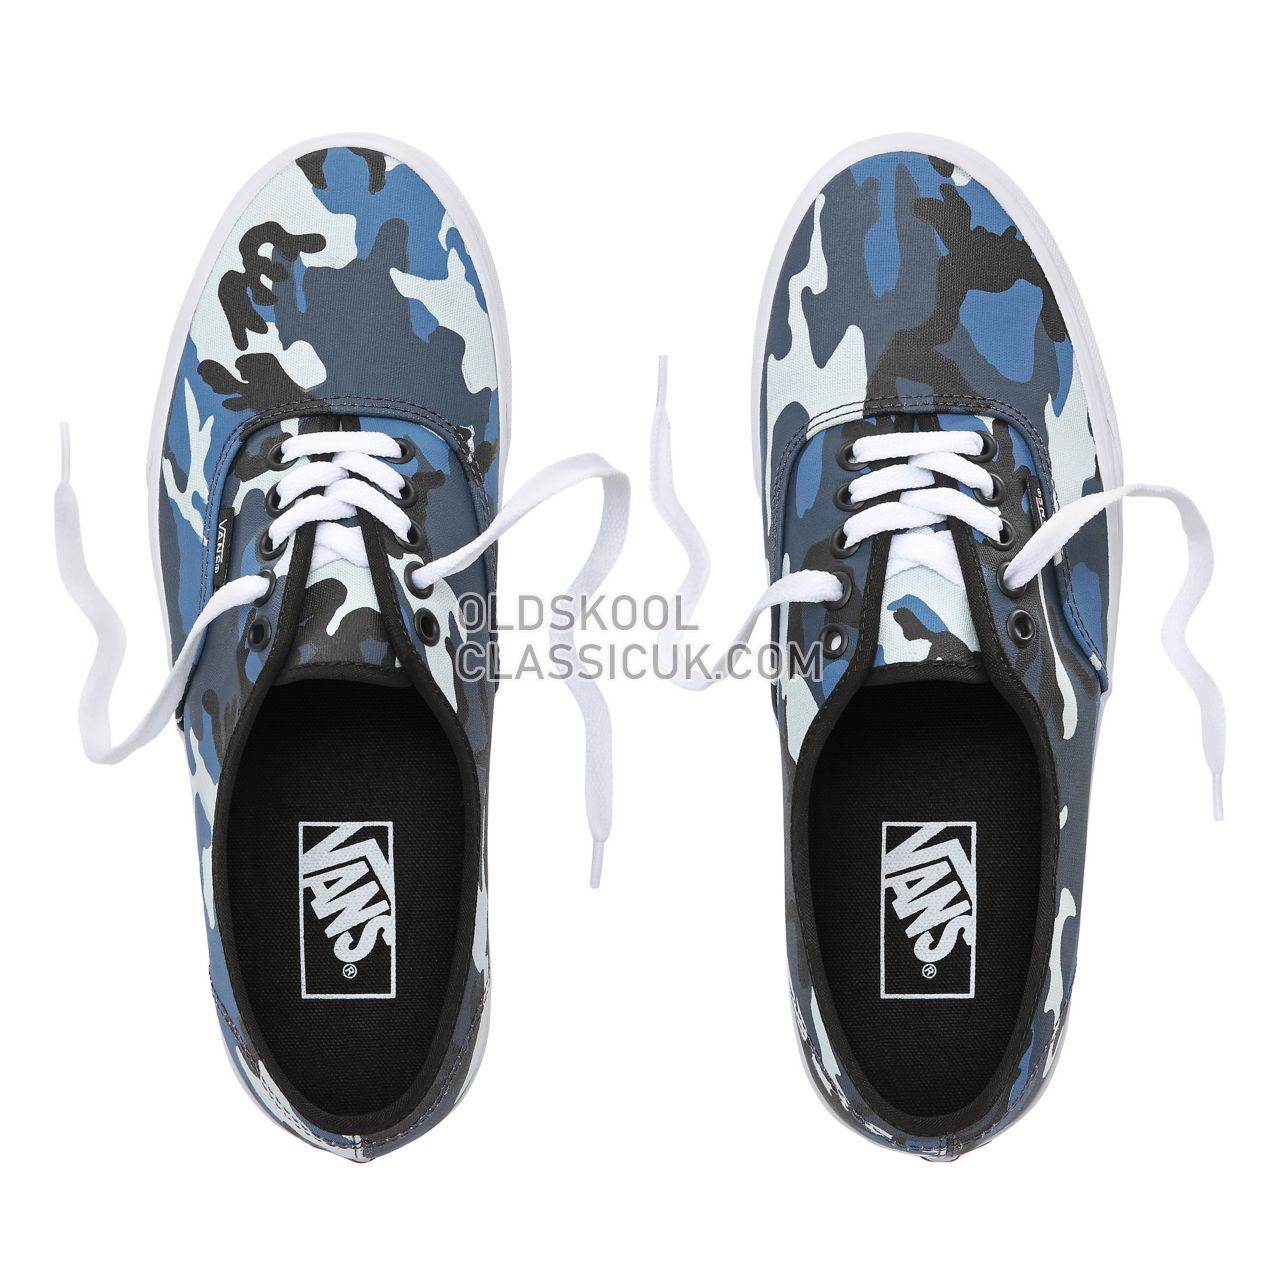 Vans Pop Camo Authentic Sneakers Mens (Pop Camo) Black/Dress Blues/True White VA38EMRK2 Shoes